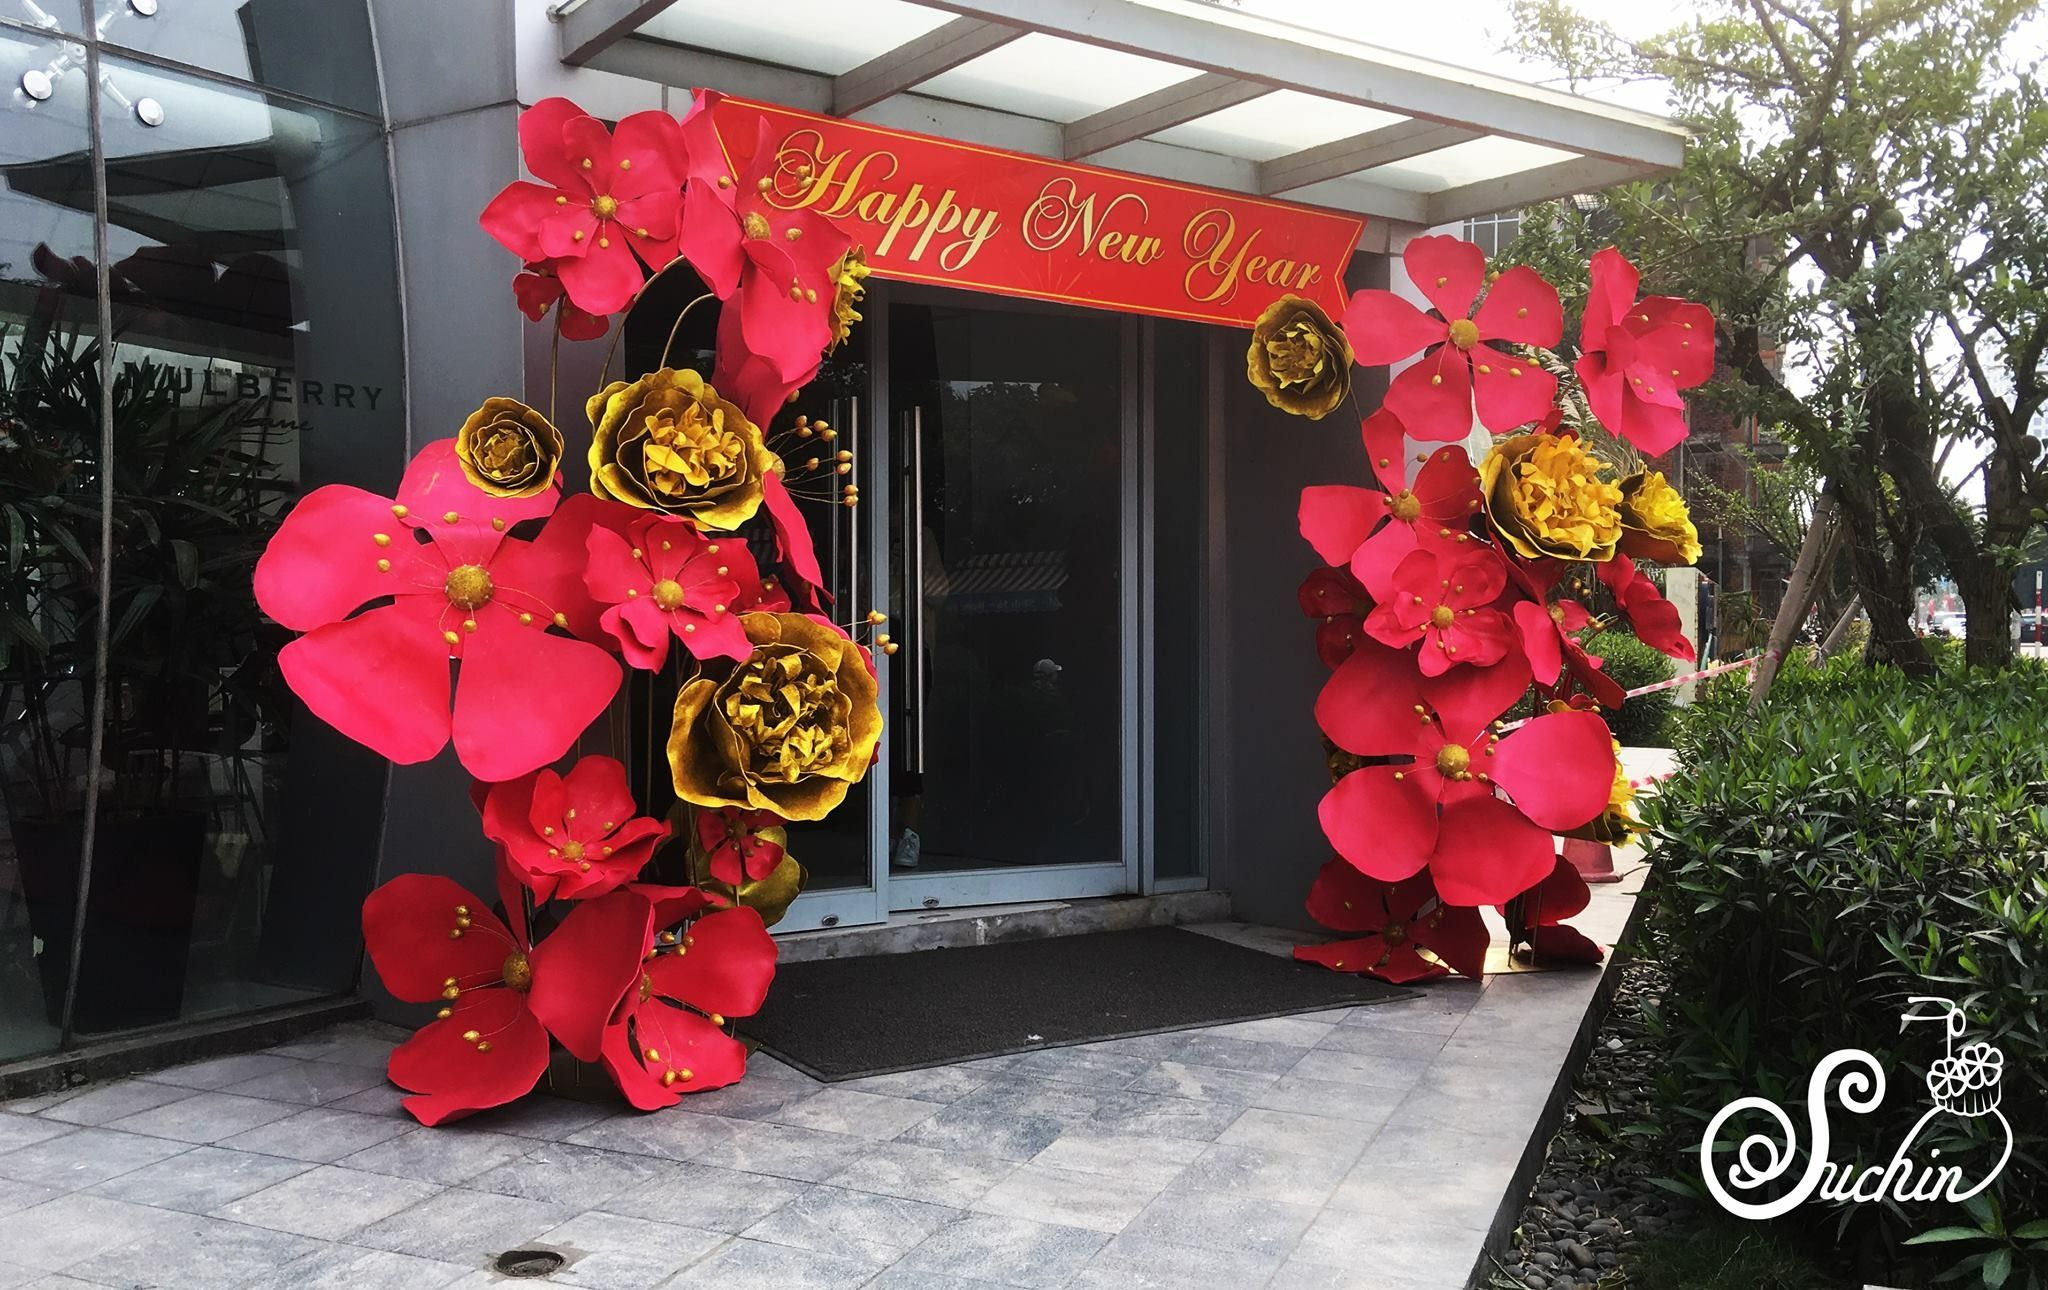 Pin by 谢 越 on 美陳 | Chinese new year decorations, Paper ...